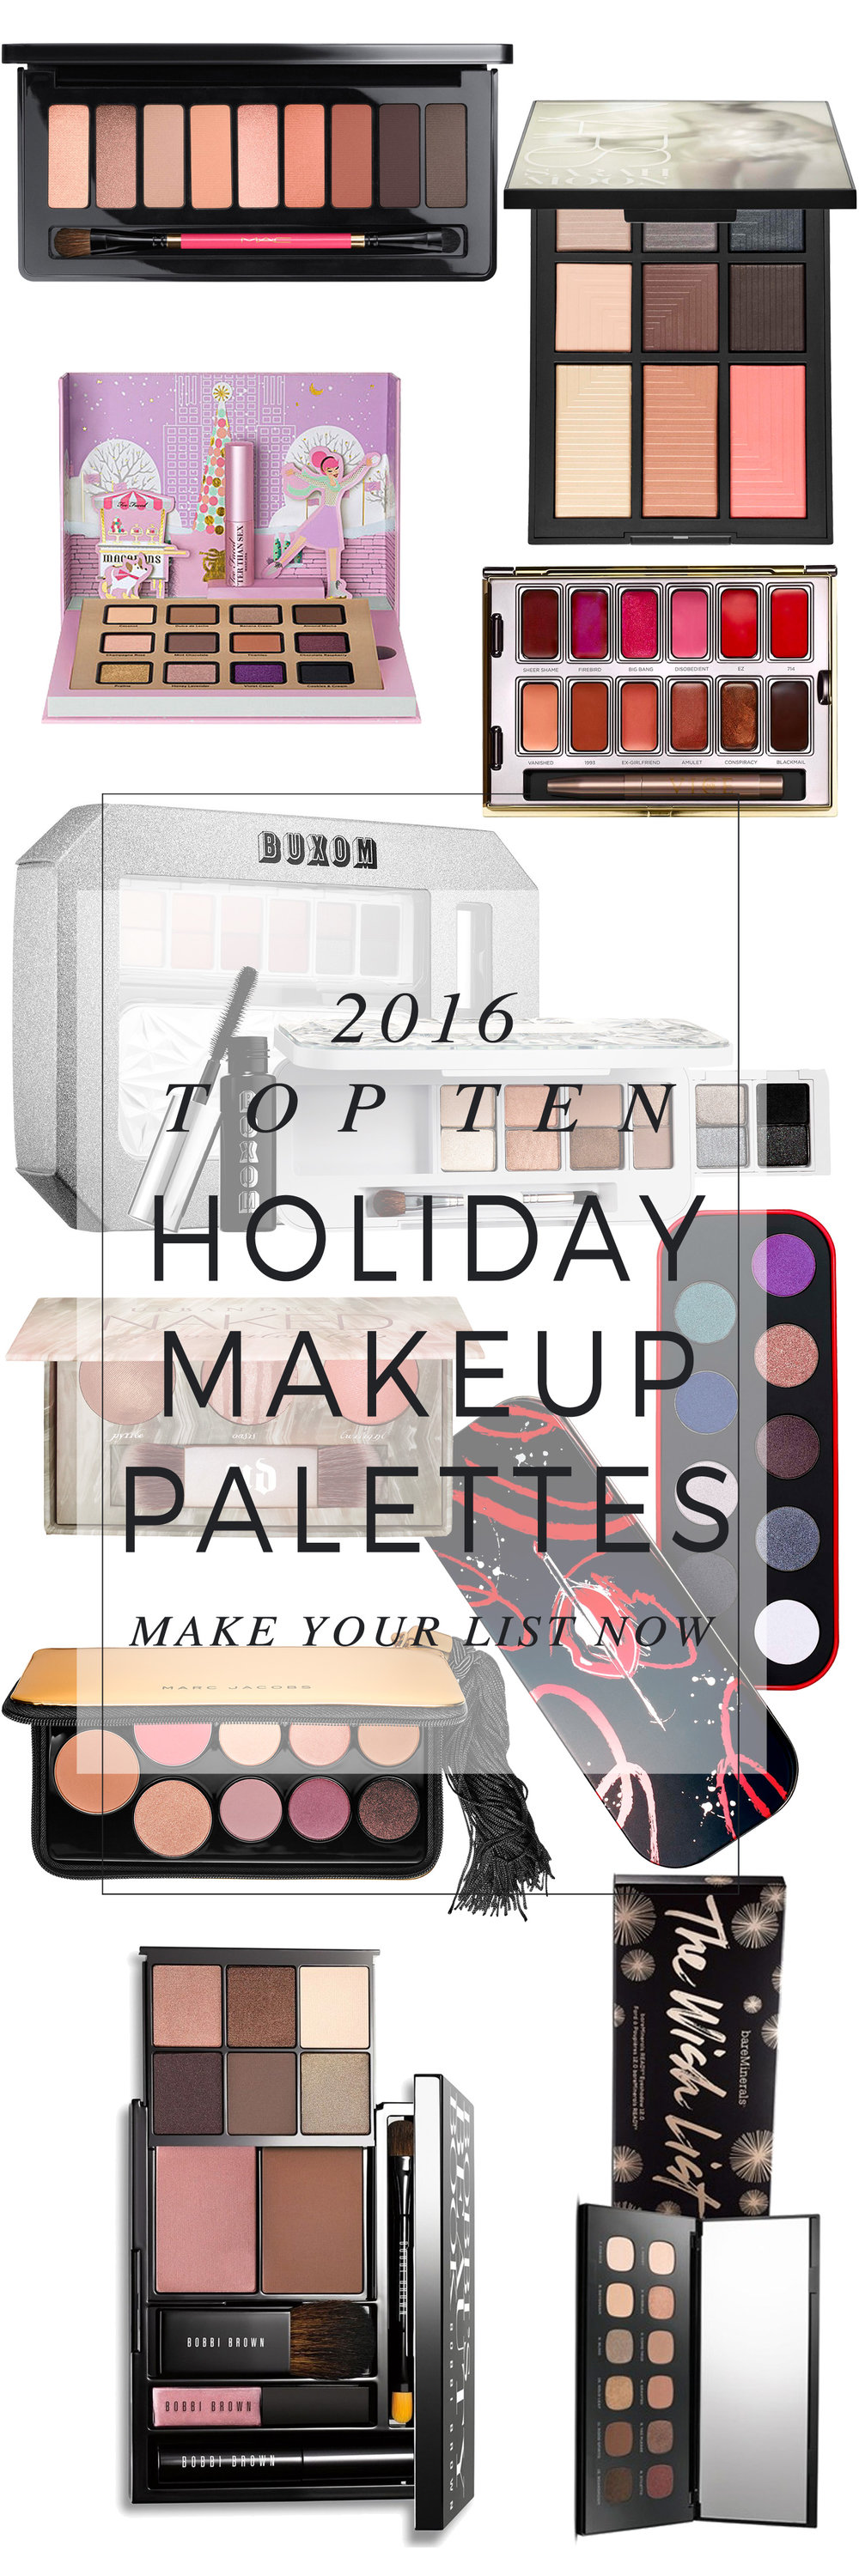 Top 10 Holiday Makeup Palettes